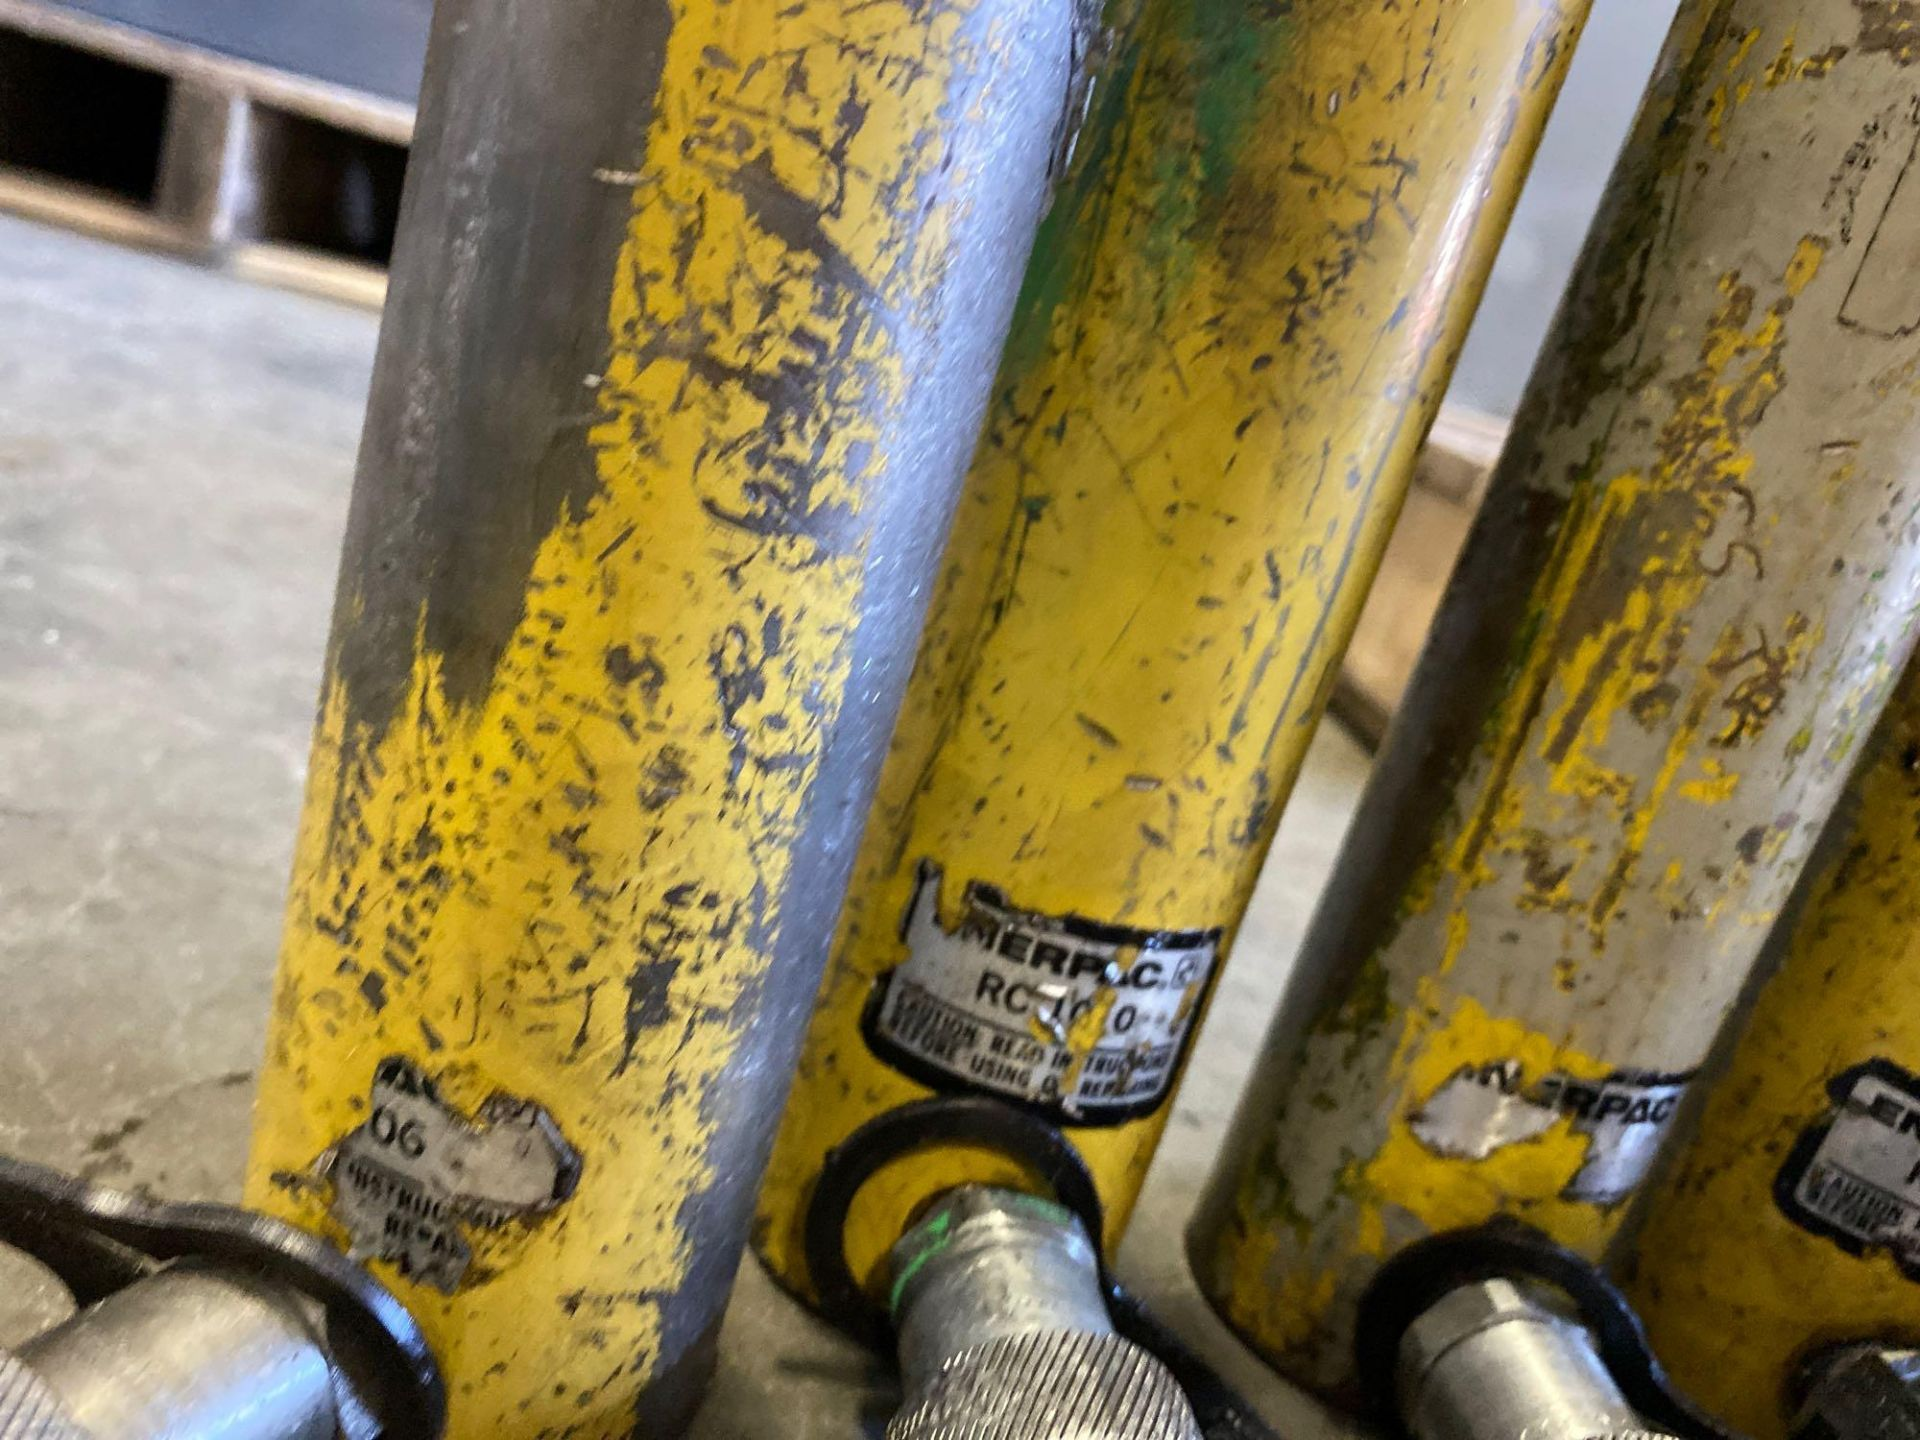 Lot 334C - ASSORTED HYDRUALIC CYLINDERS